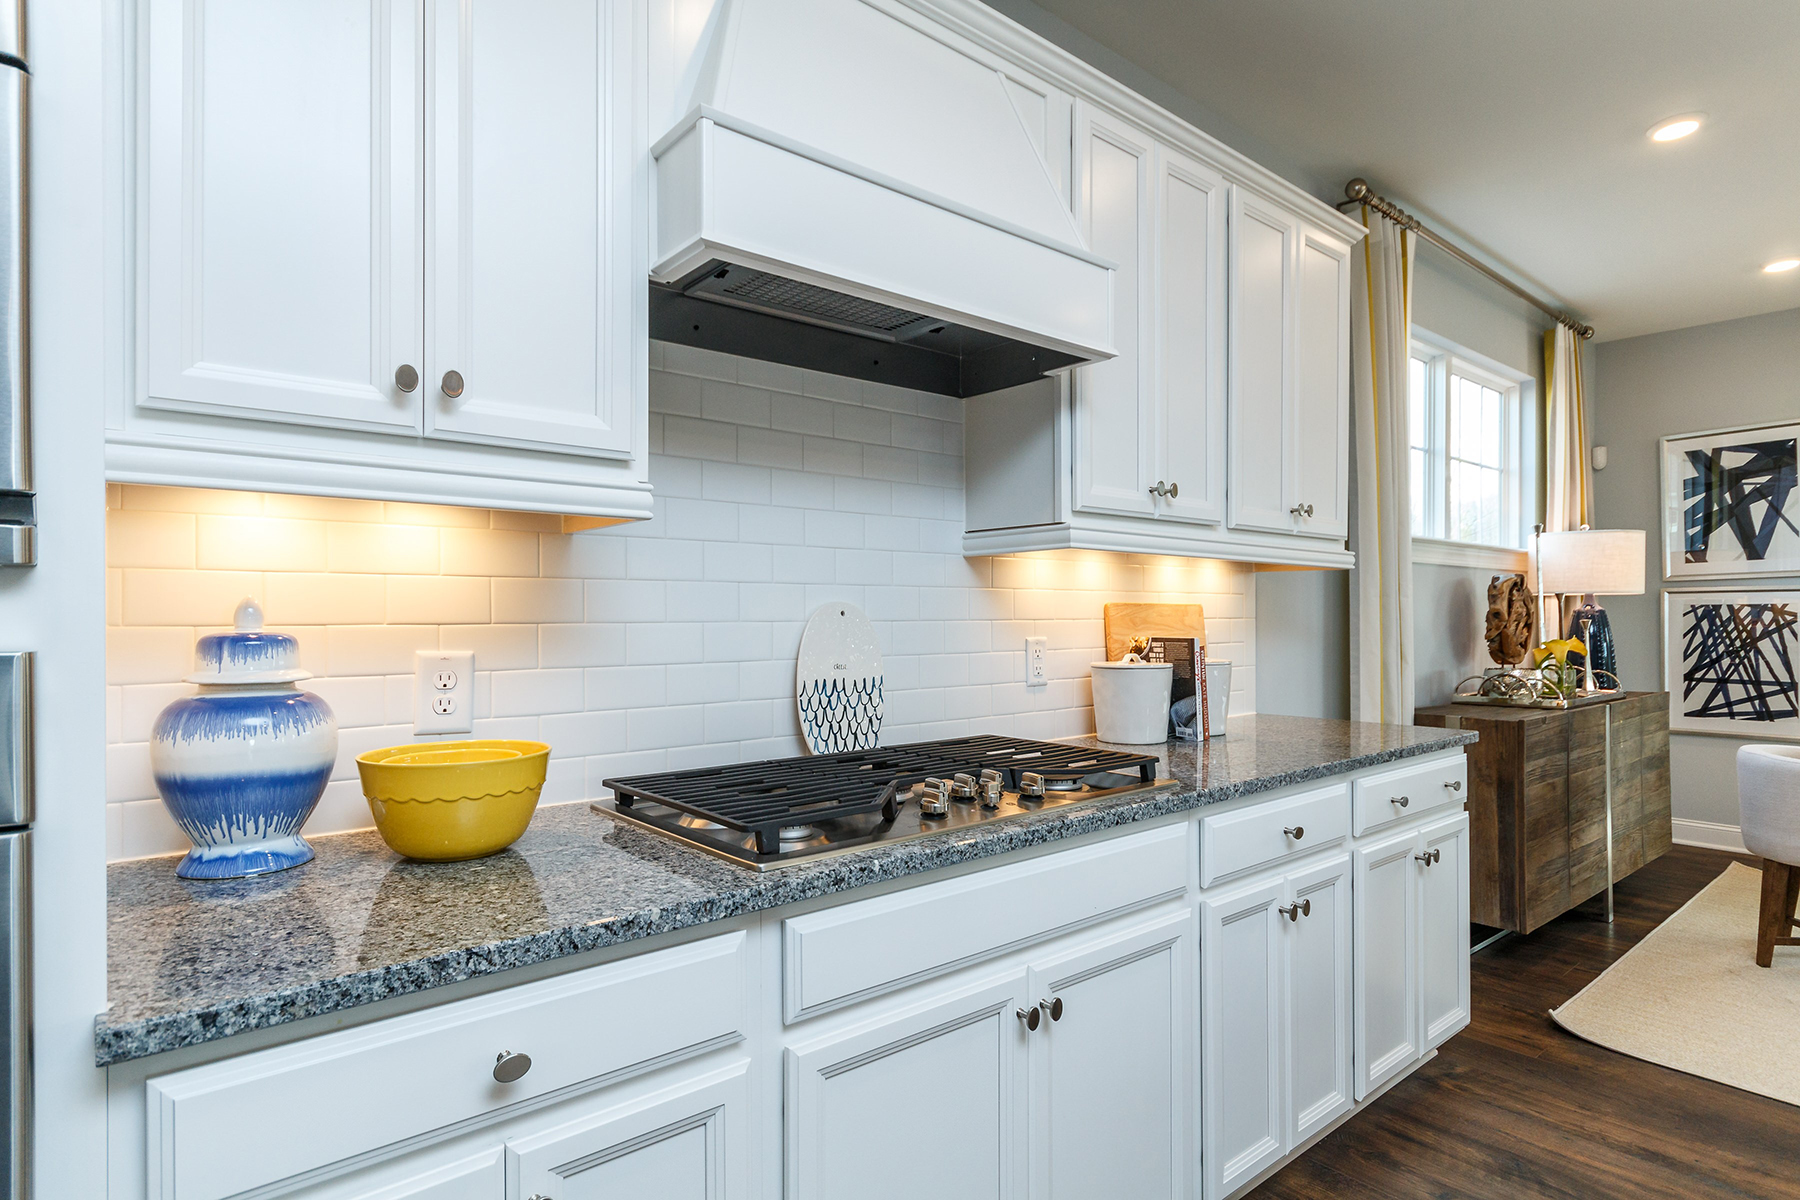 New Home in Durham - The Watauga - M/I Homes